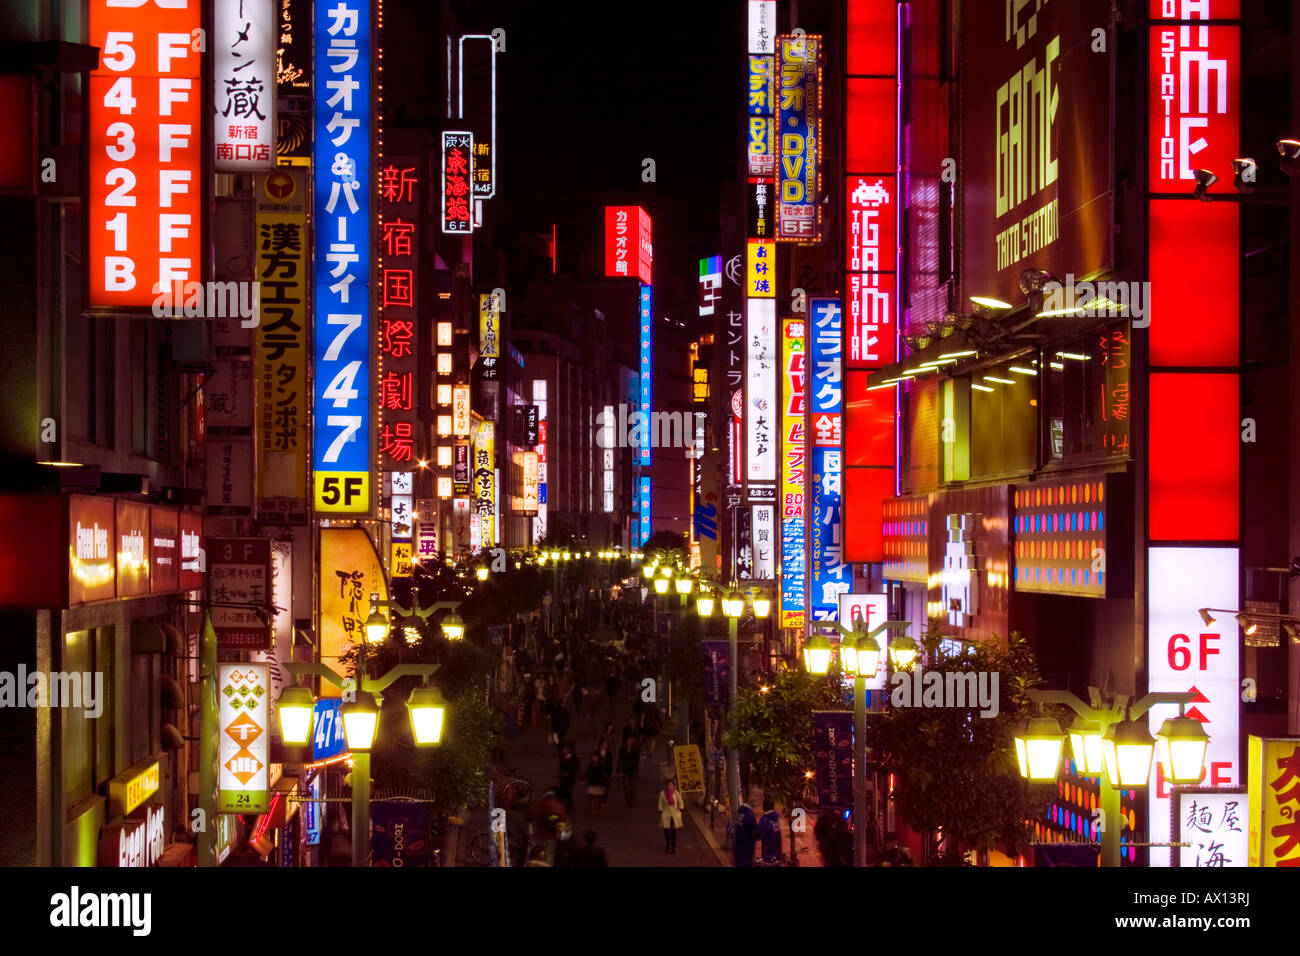 Busy scene at night with many bright glowing signs and people walking in street in Shinjuku, Tokyo, Japan. - Stock Image